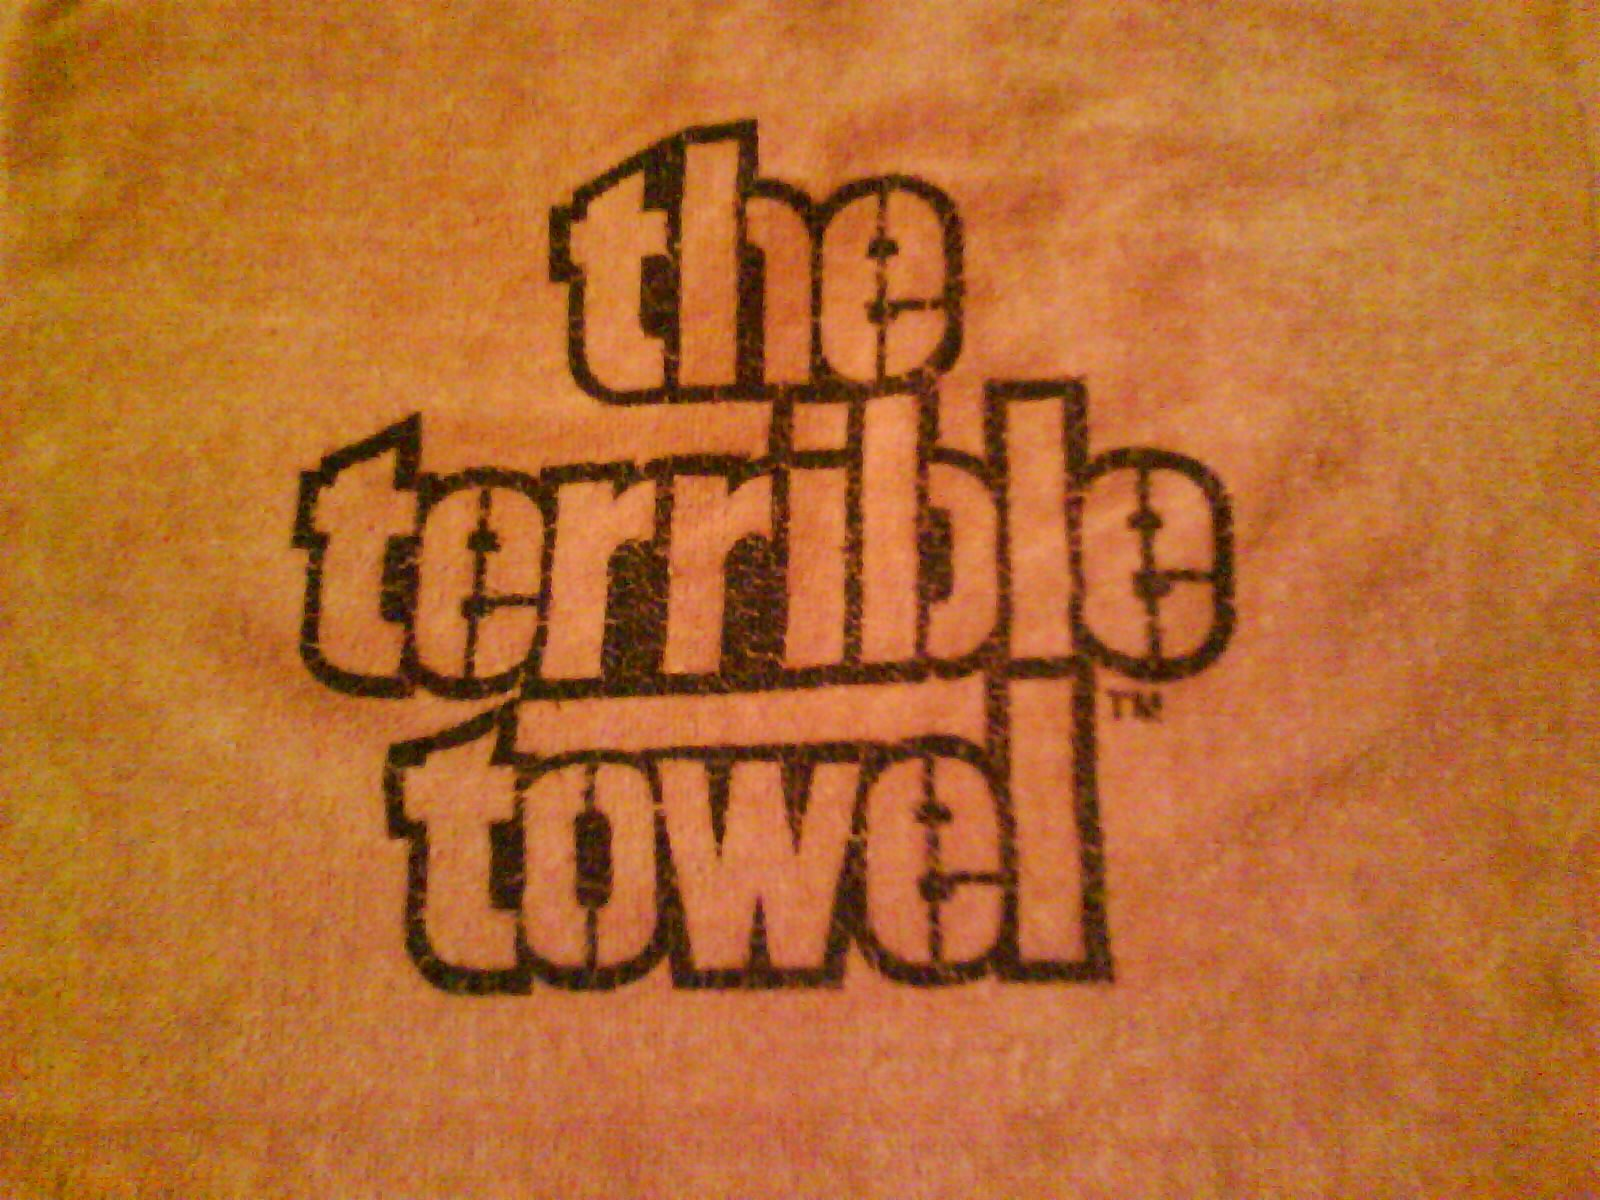 Terrible towel Pictures 2015 Super Bowl Playoffs Let the Games Begin